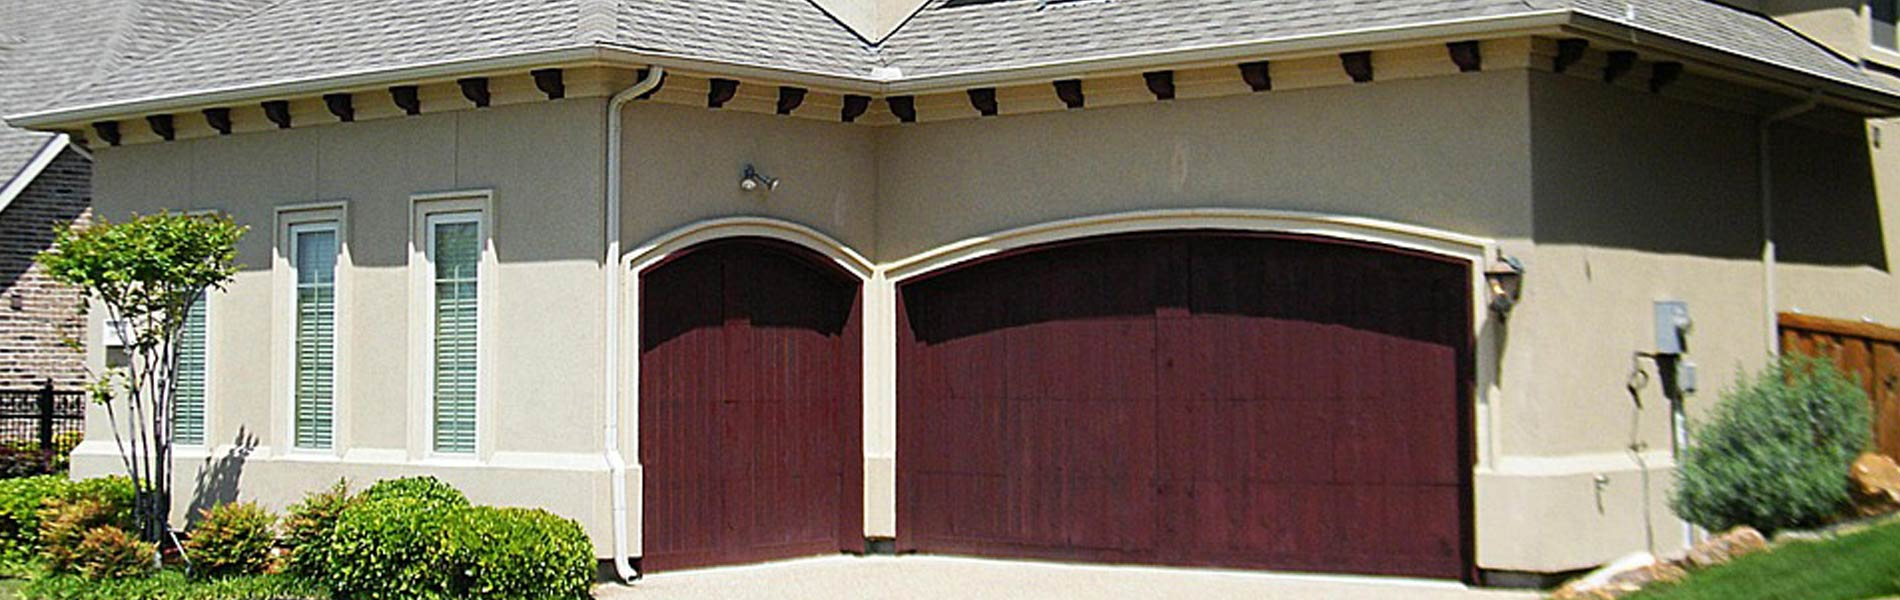 Phoenix Garage Door Shop Phoenix, AZ 602-734-0486